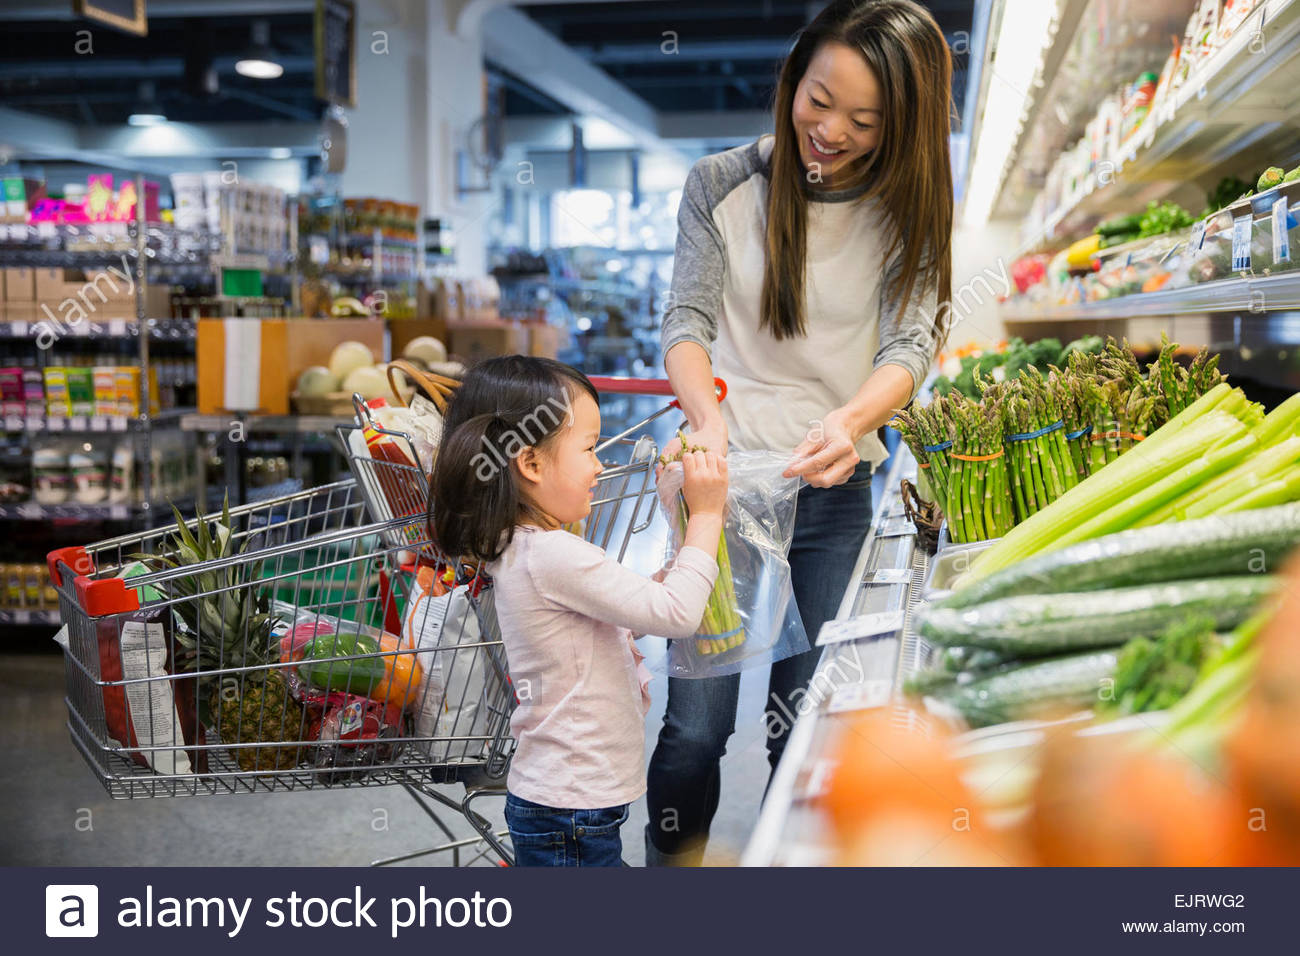 Mother and daughter bagging asparagus in grocery store - Stock Image